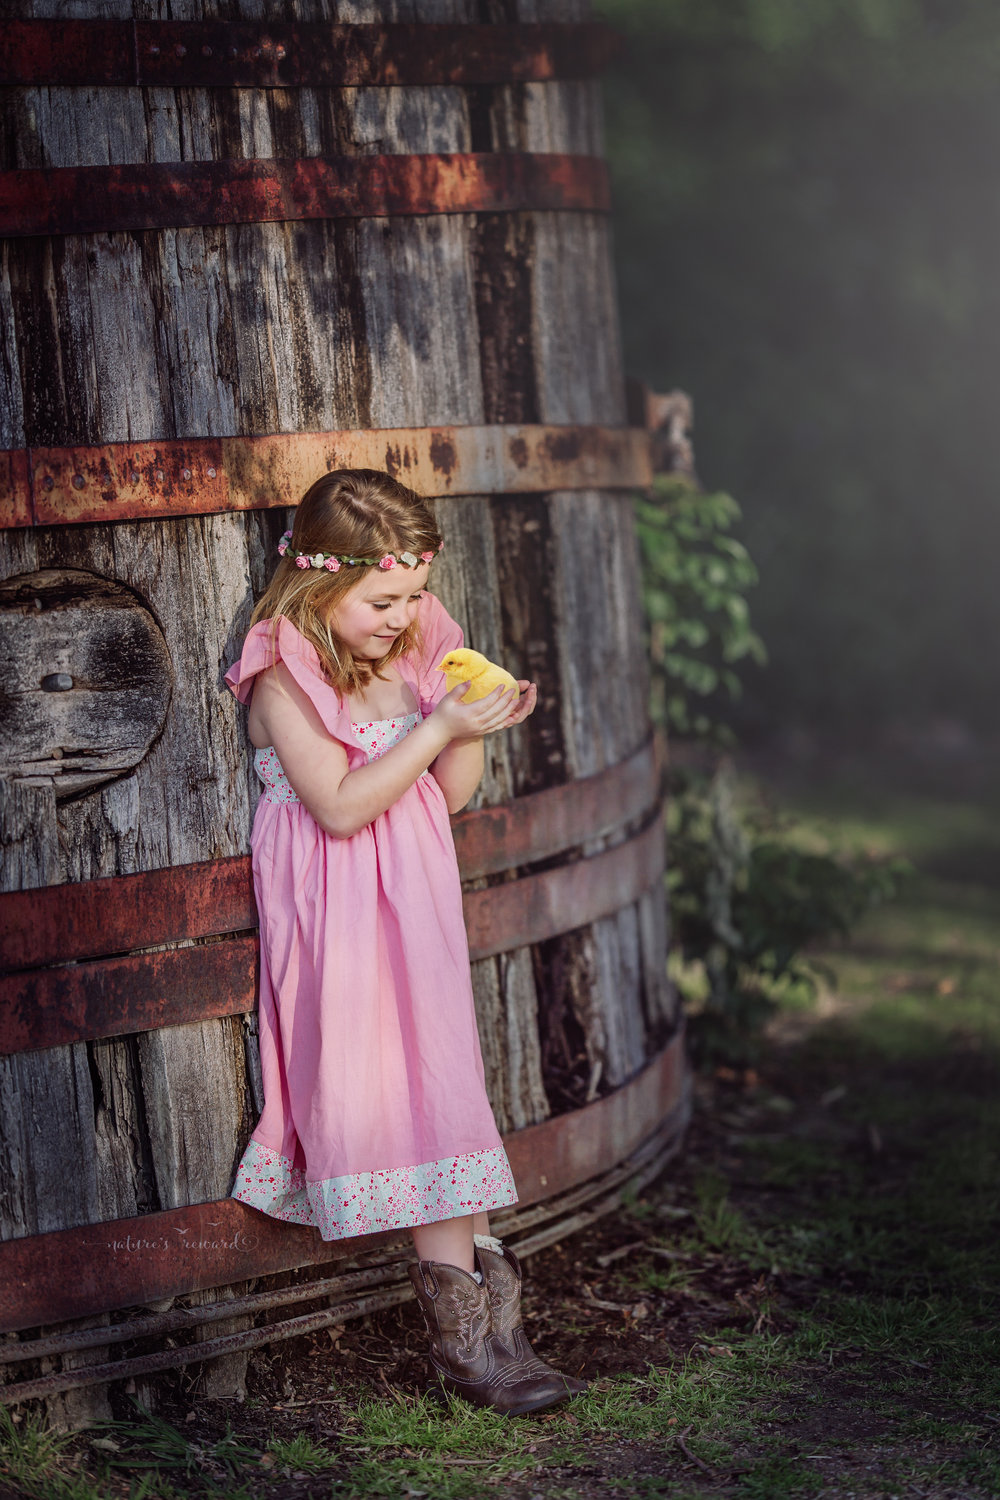 This Cute Chick gets all the love in this darling composite piece showcasing this lovely pink dress and cowgirl boots  by Nature's Reward Photography, a Southern California Photographer